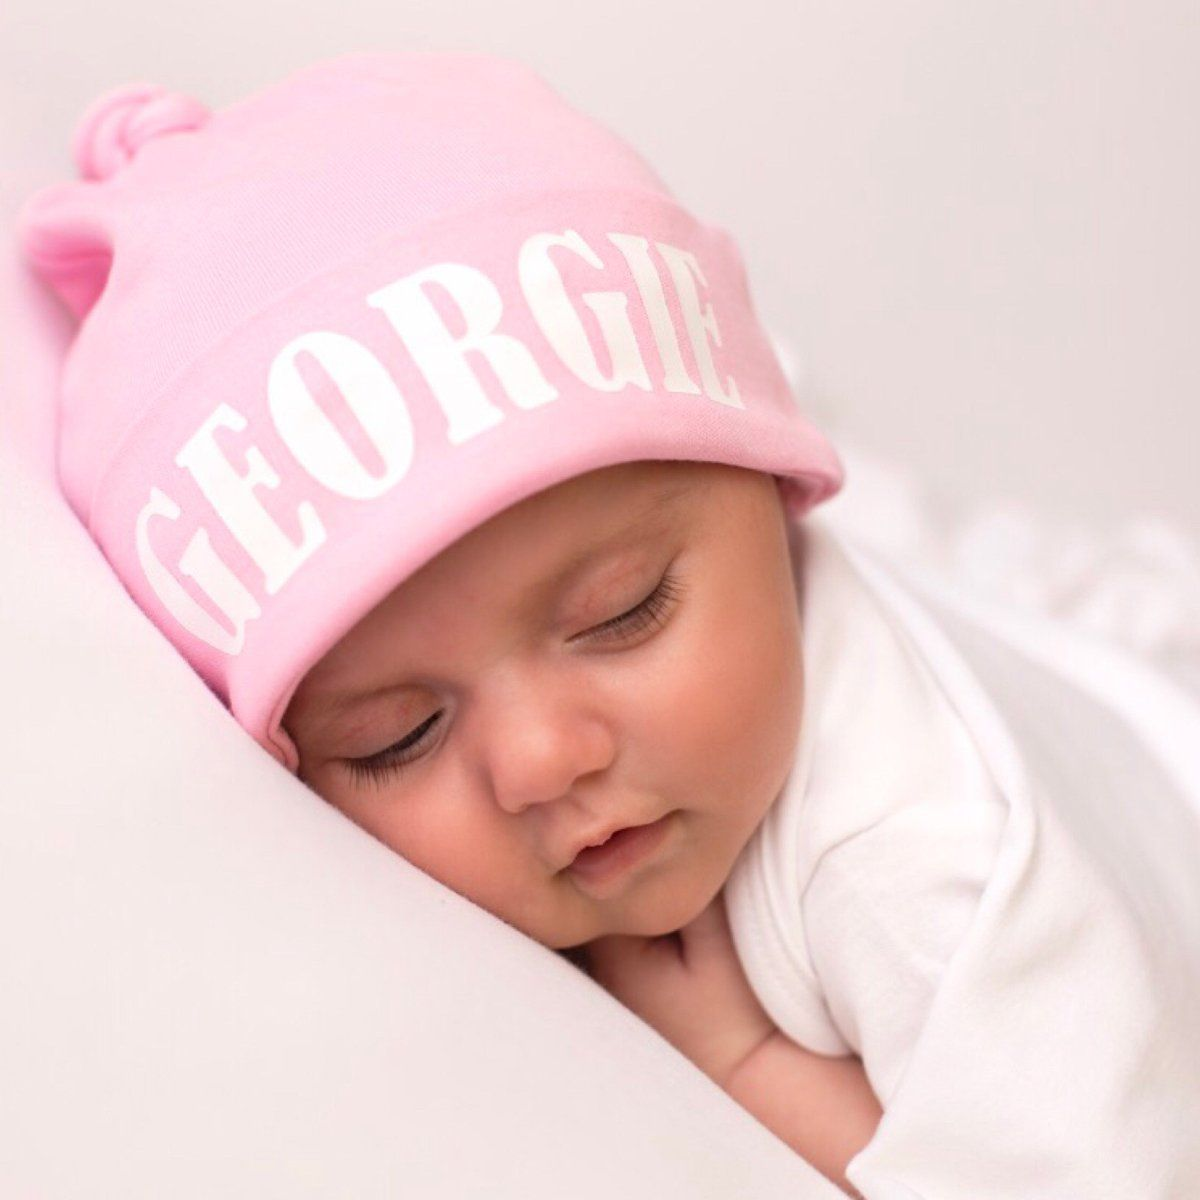 7670306d1e6 The cutest personalised baby hat for your newborn babies arrival also a  beautiful keepsake. Makes the perfect personalised baby gift for baby and  new ...